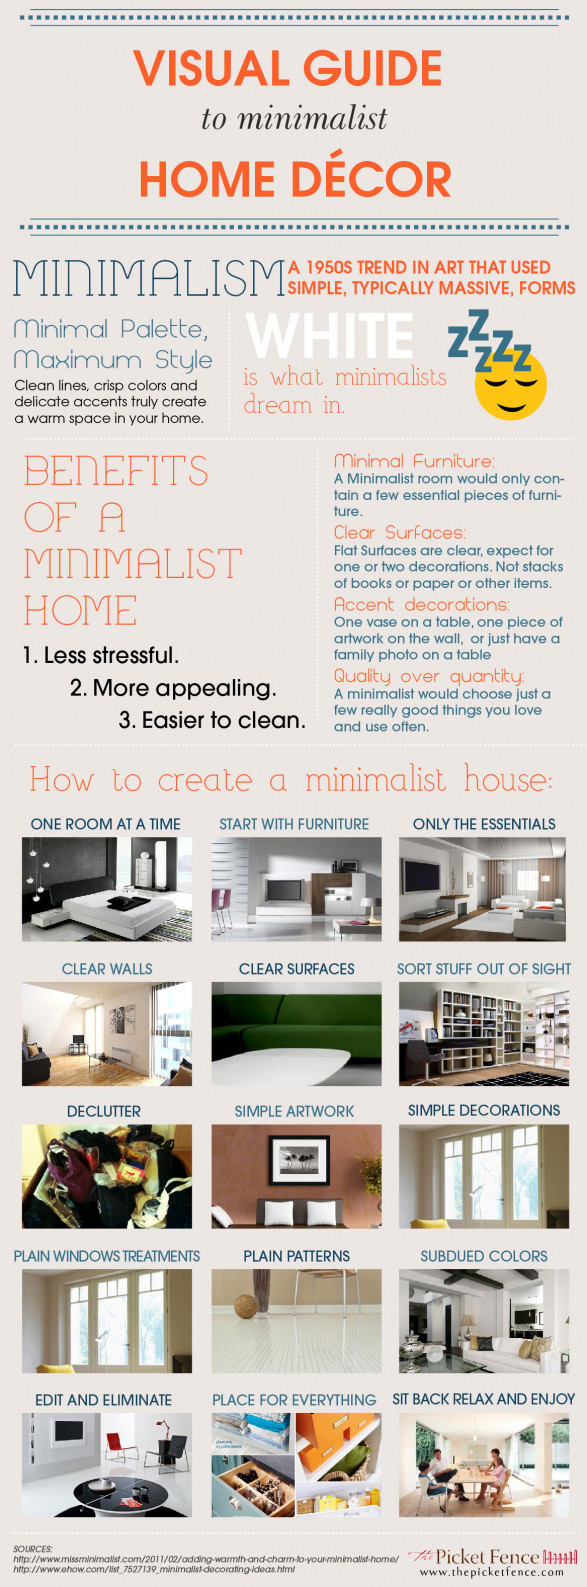 A Visual Guide to Minimalist Home Decor